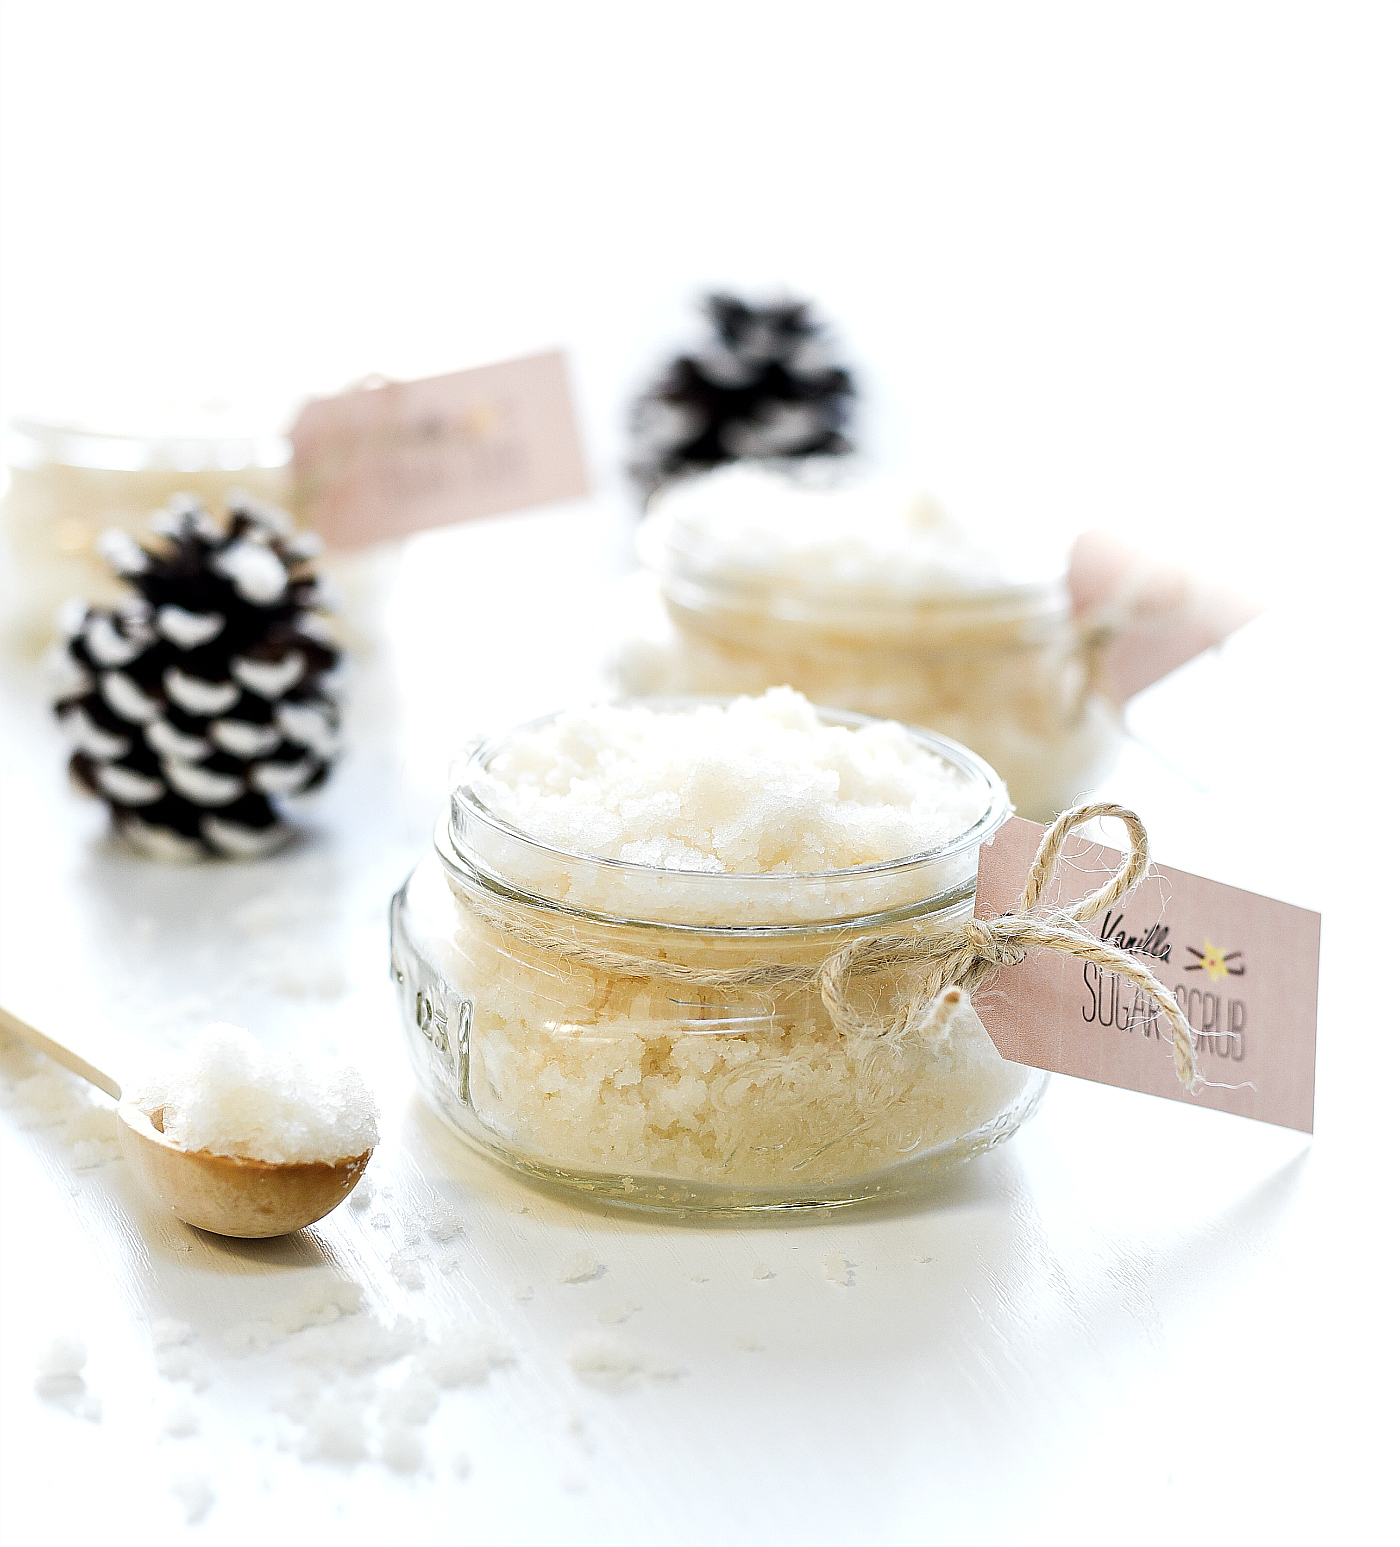 Sugar Scrub - Vanilla Sugar Scrub Recipe - Homemade Sugar Scrub Recipe Ideas